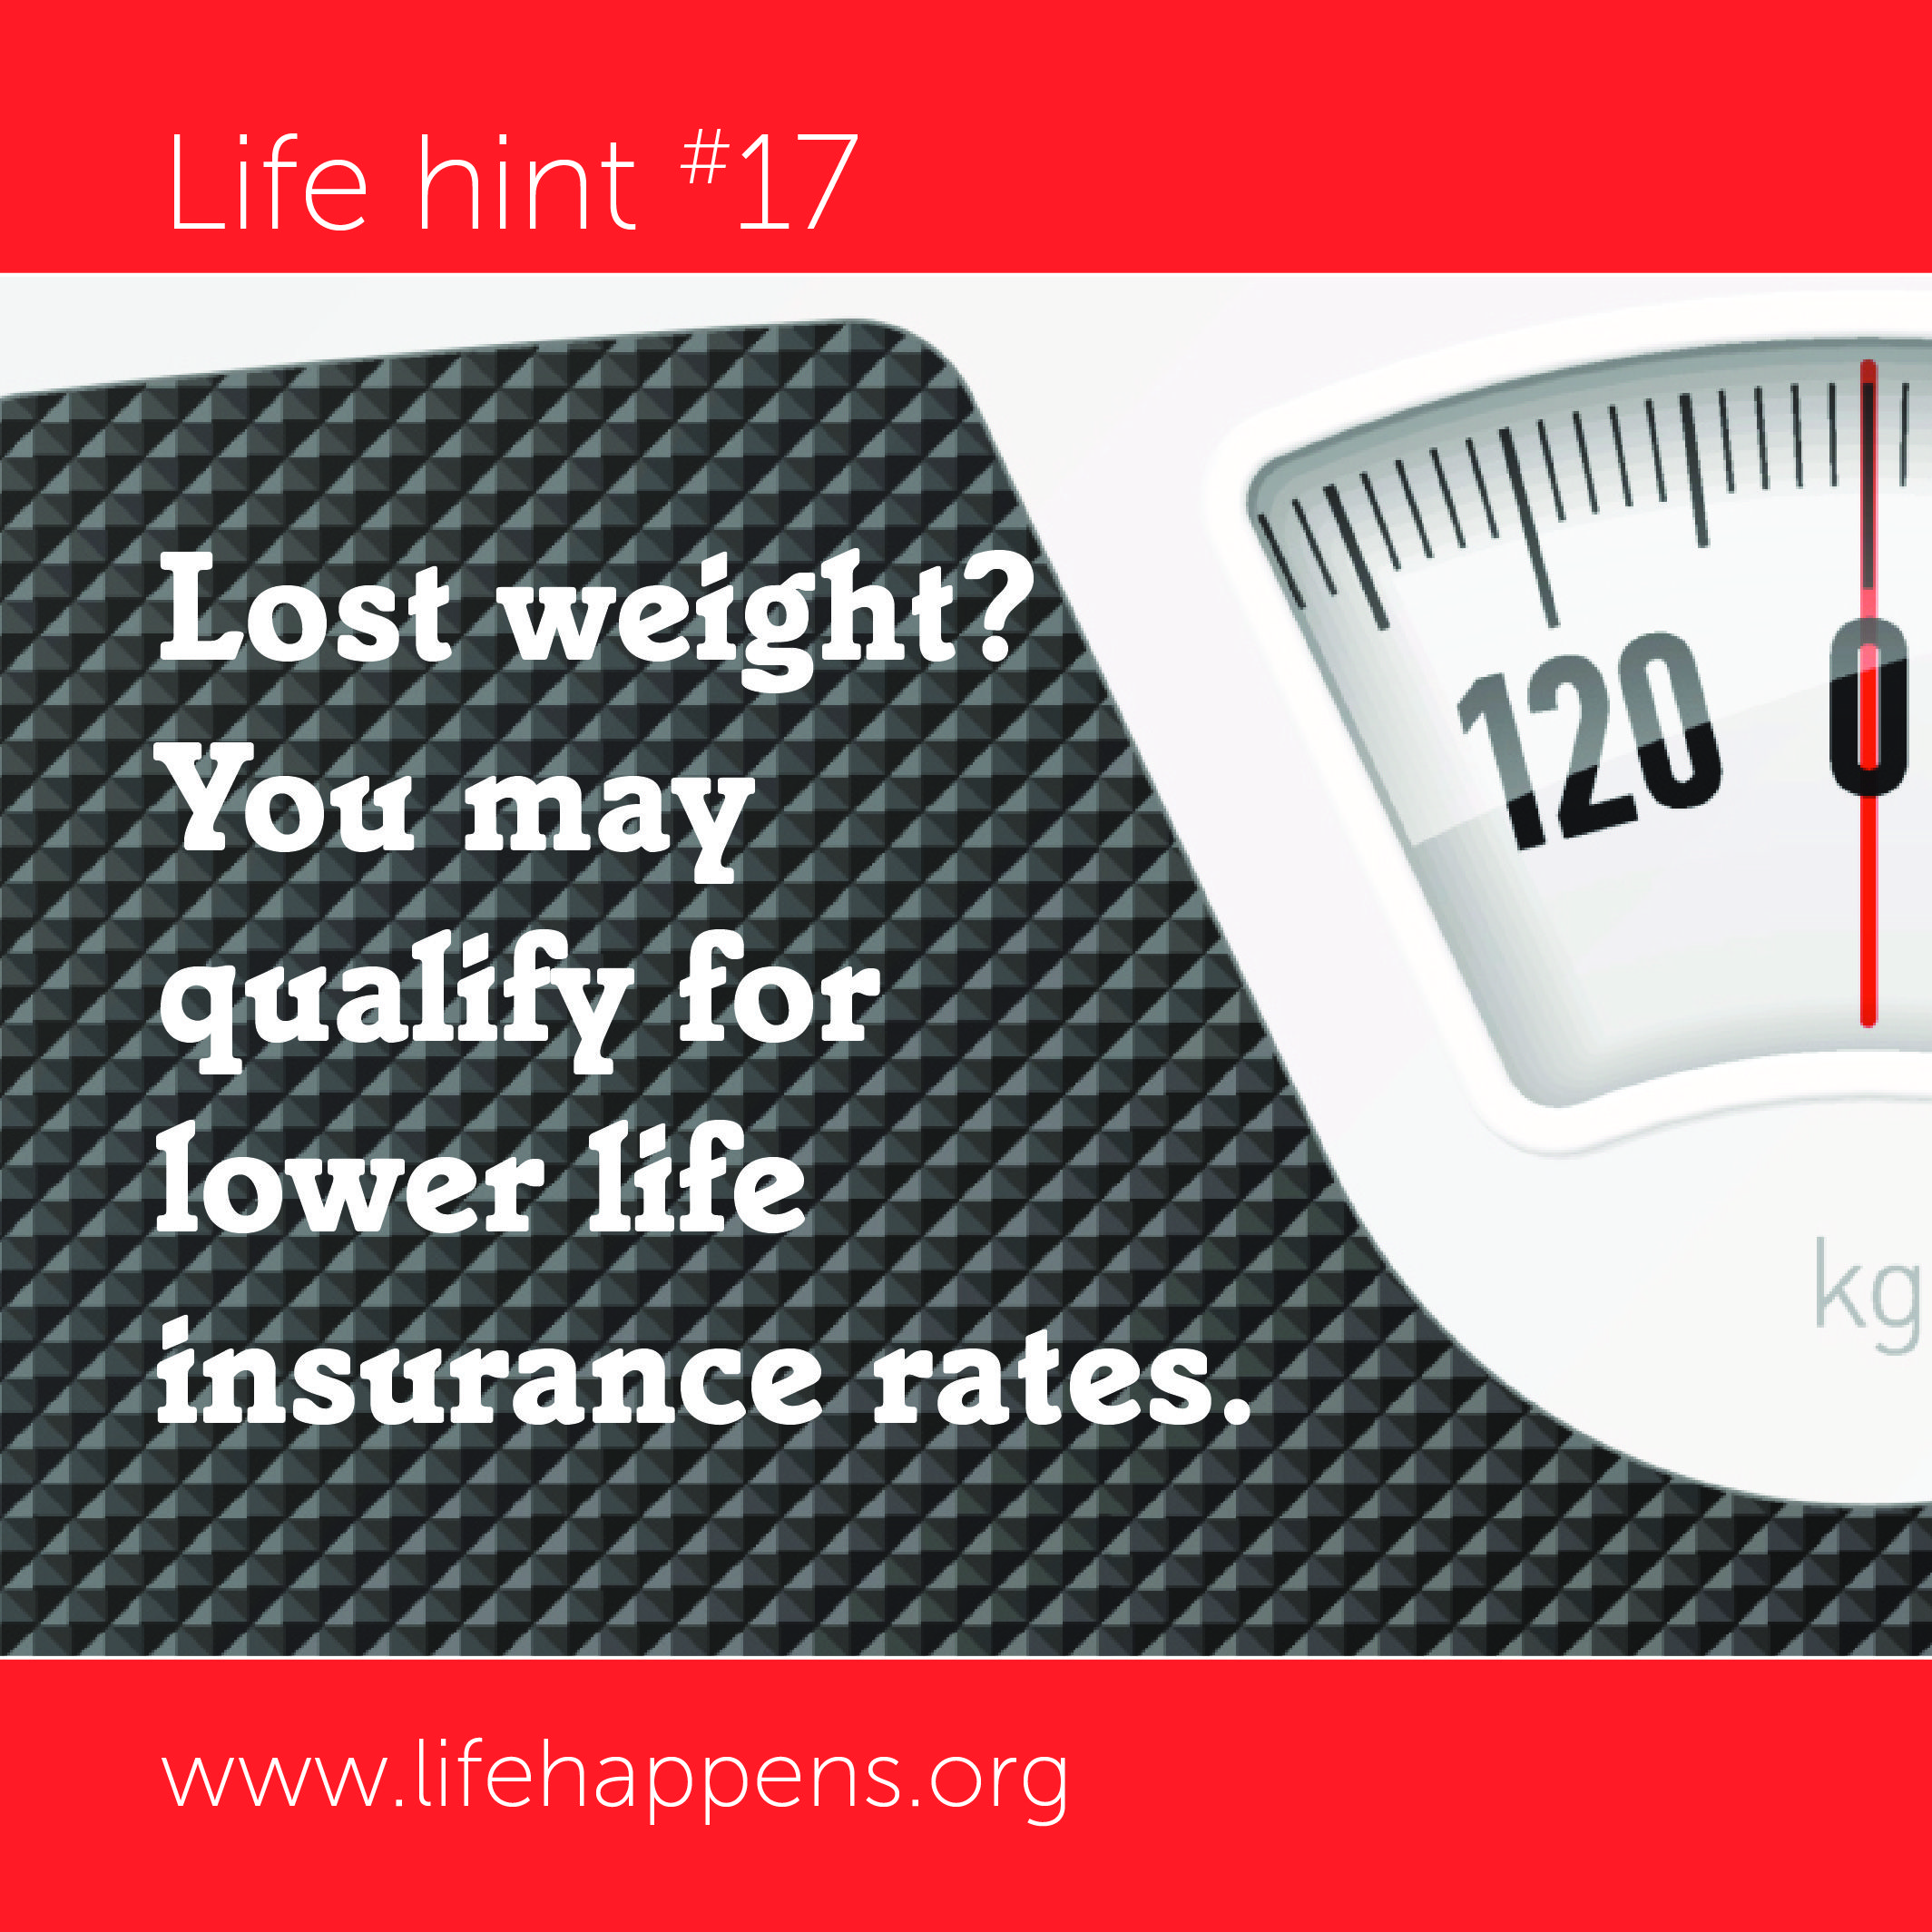 Allstate Auto Insurance Quote Life Hint #17 Lost Weight You May Qualify For Lower Life Insurance .